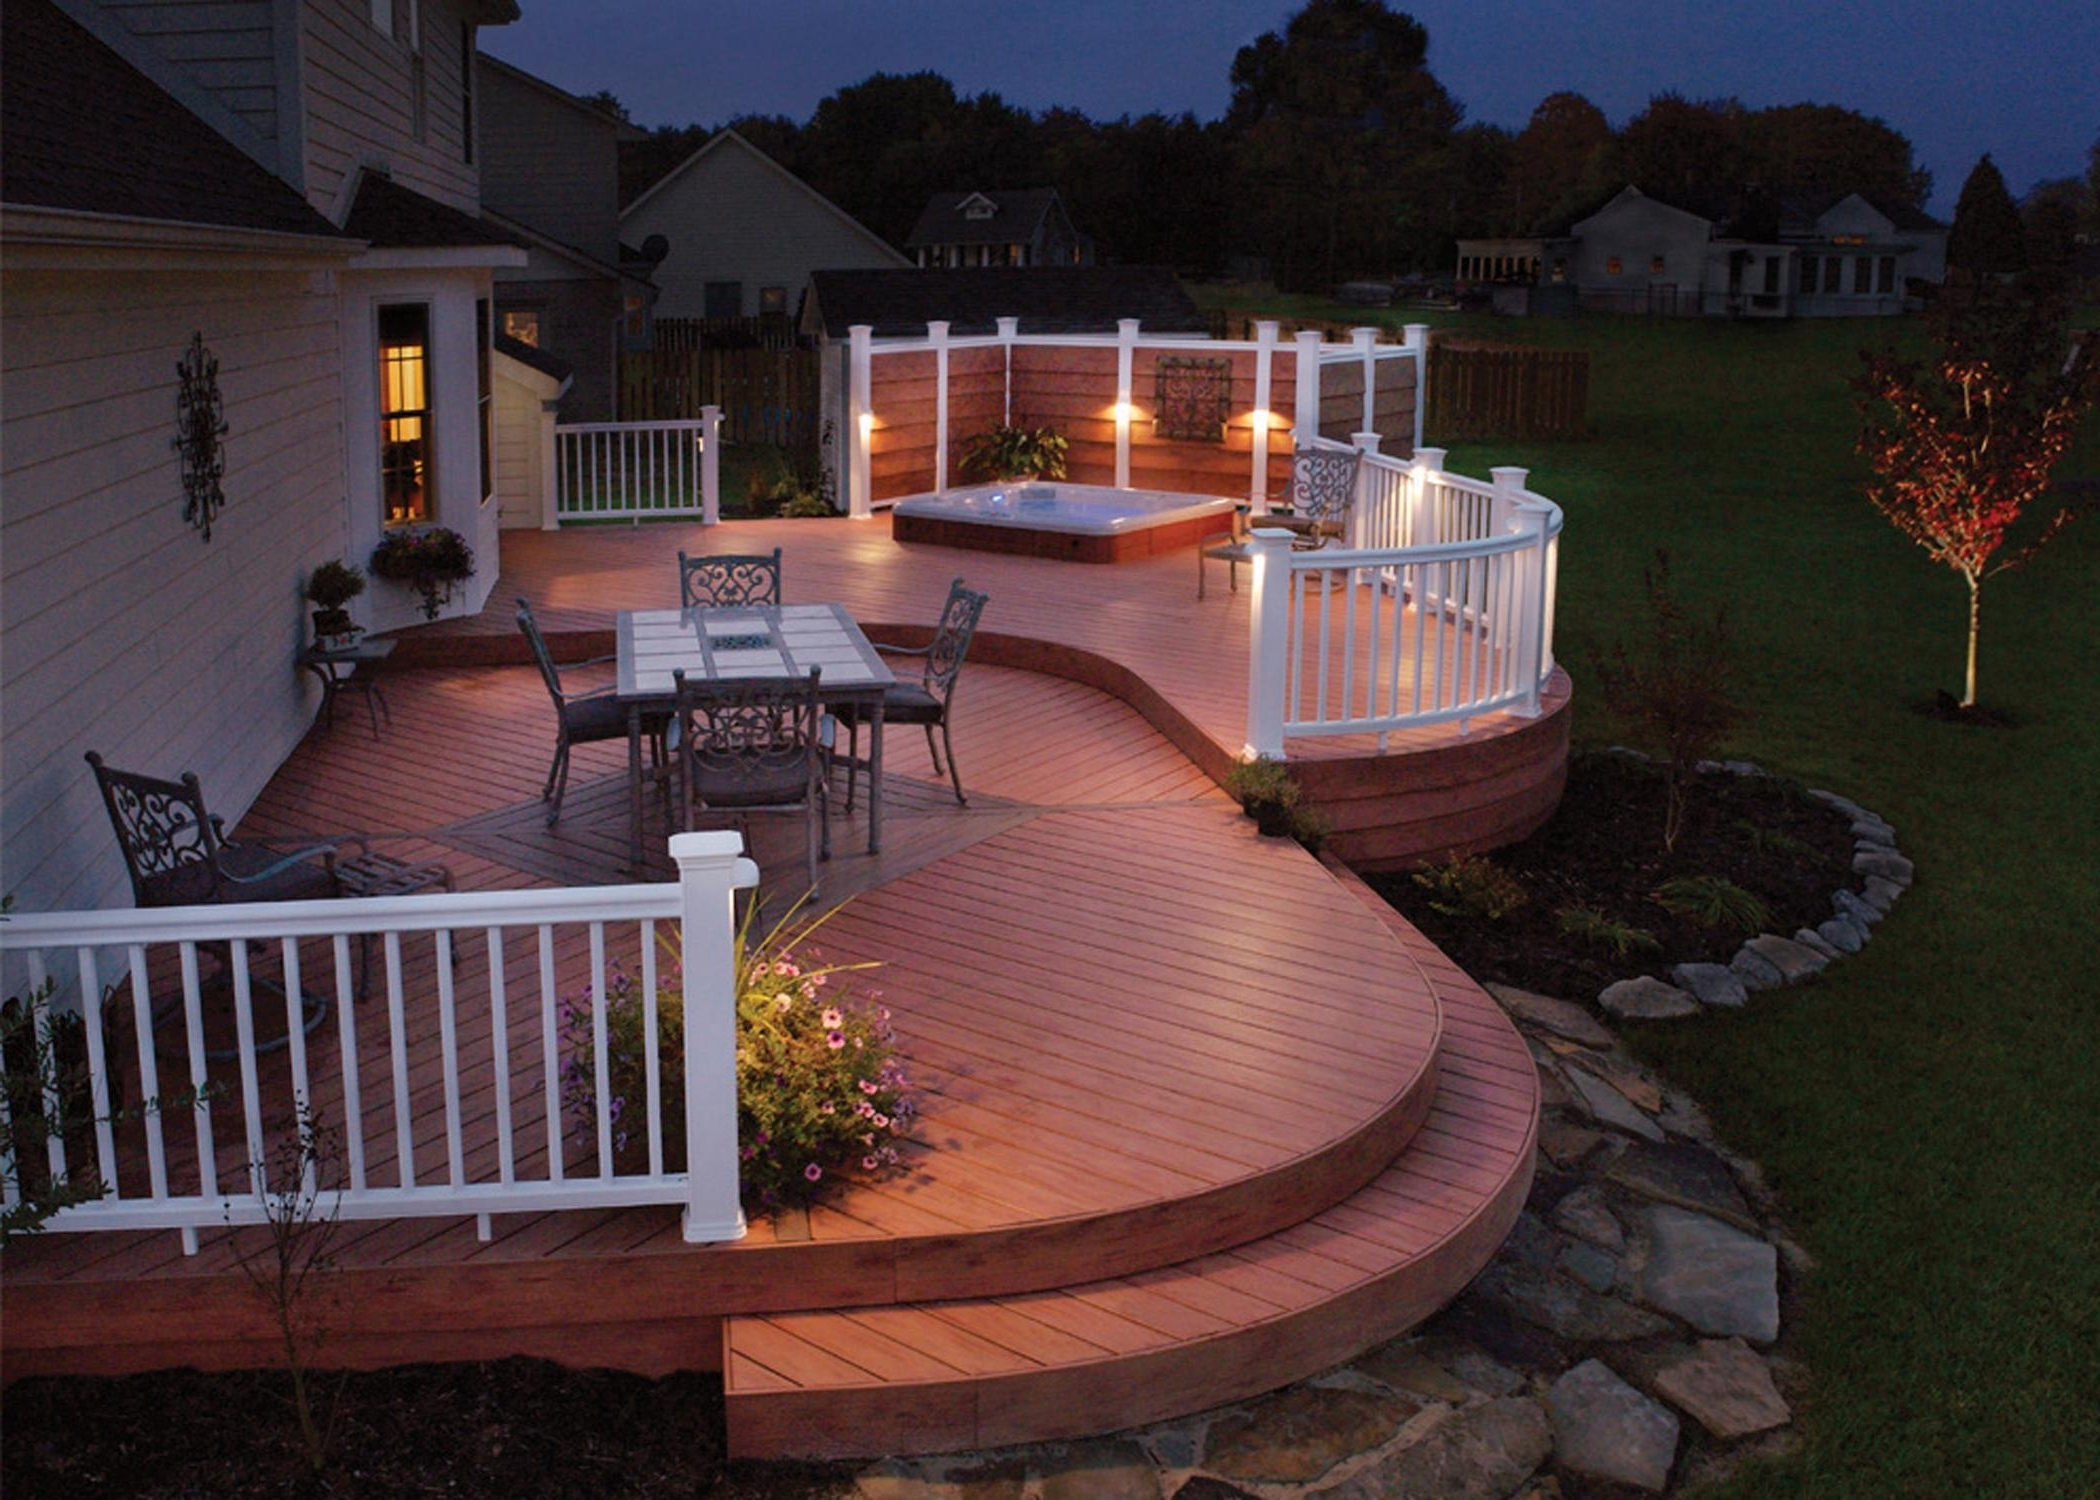 Garden Ideas : Deck Lighting Ideas Some Tips To Get The Best Outdoor Pertaining To Recent Modern Garden Low Voltage Deck Lighting (View 5 of 20)